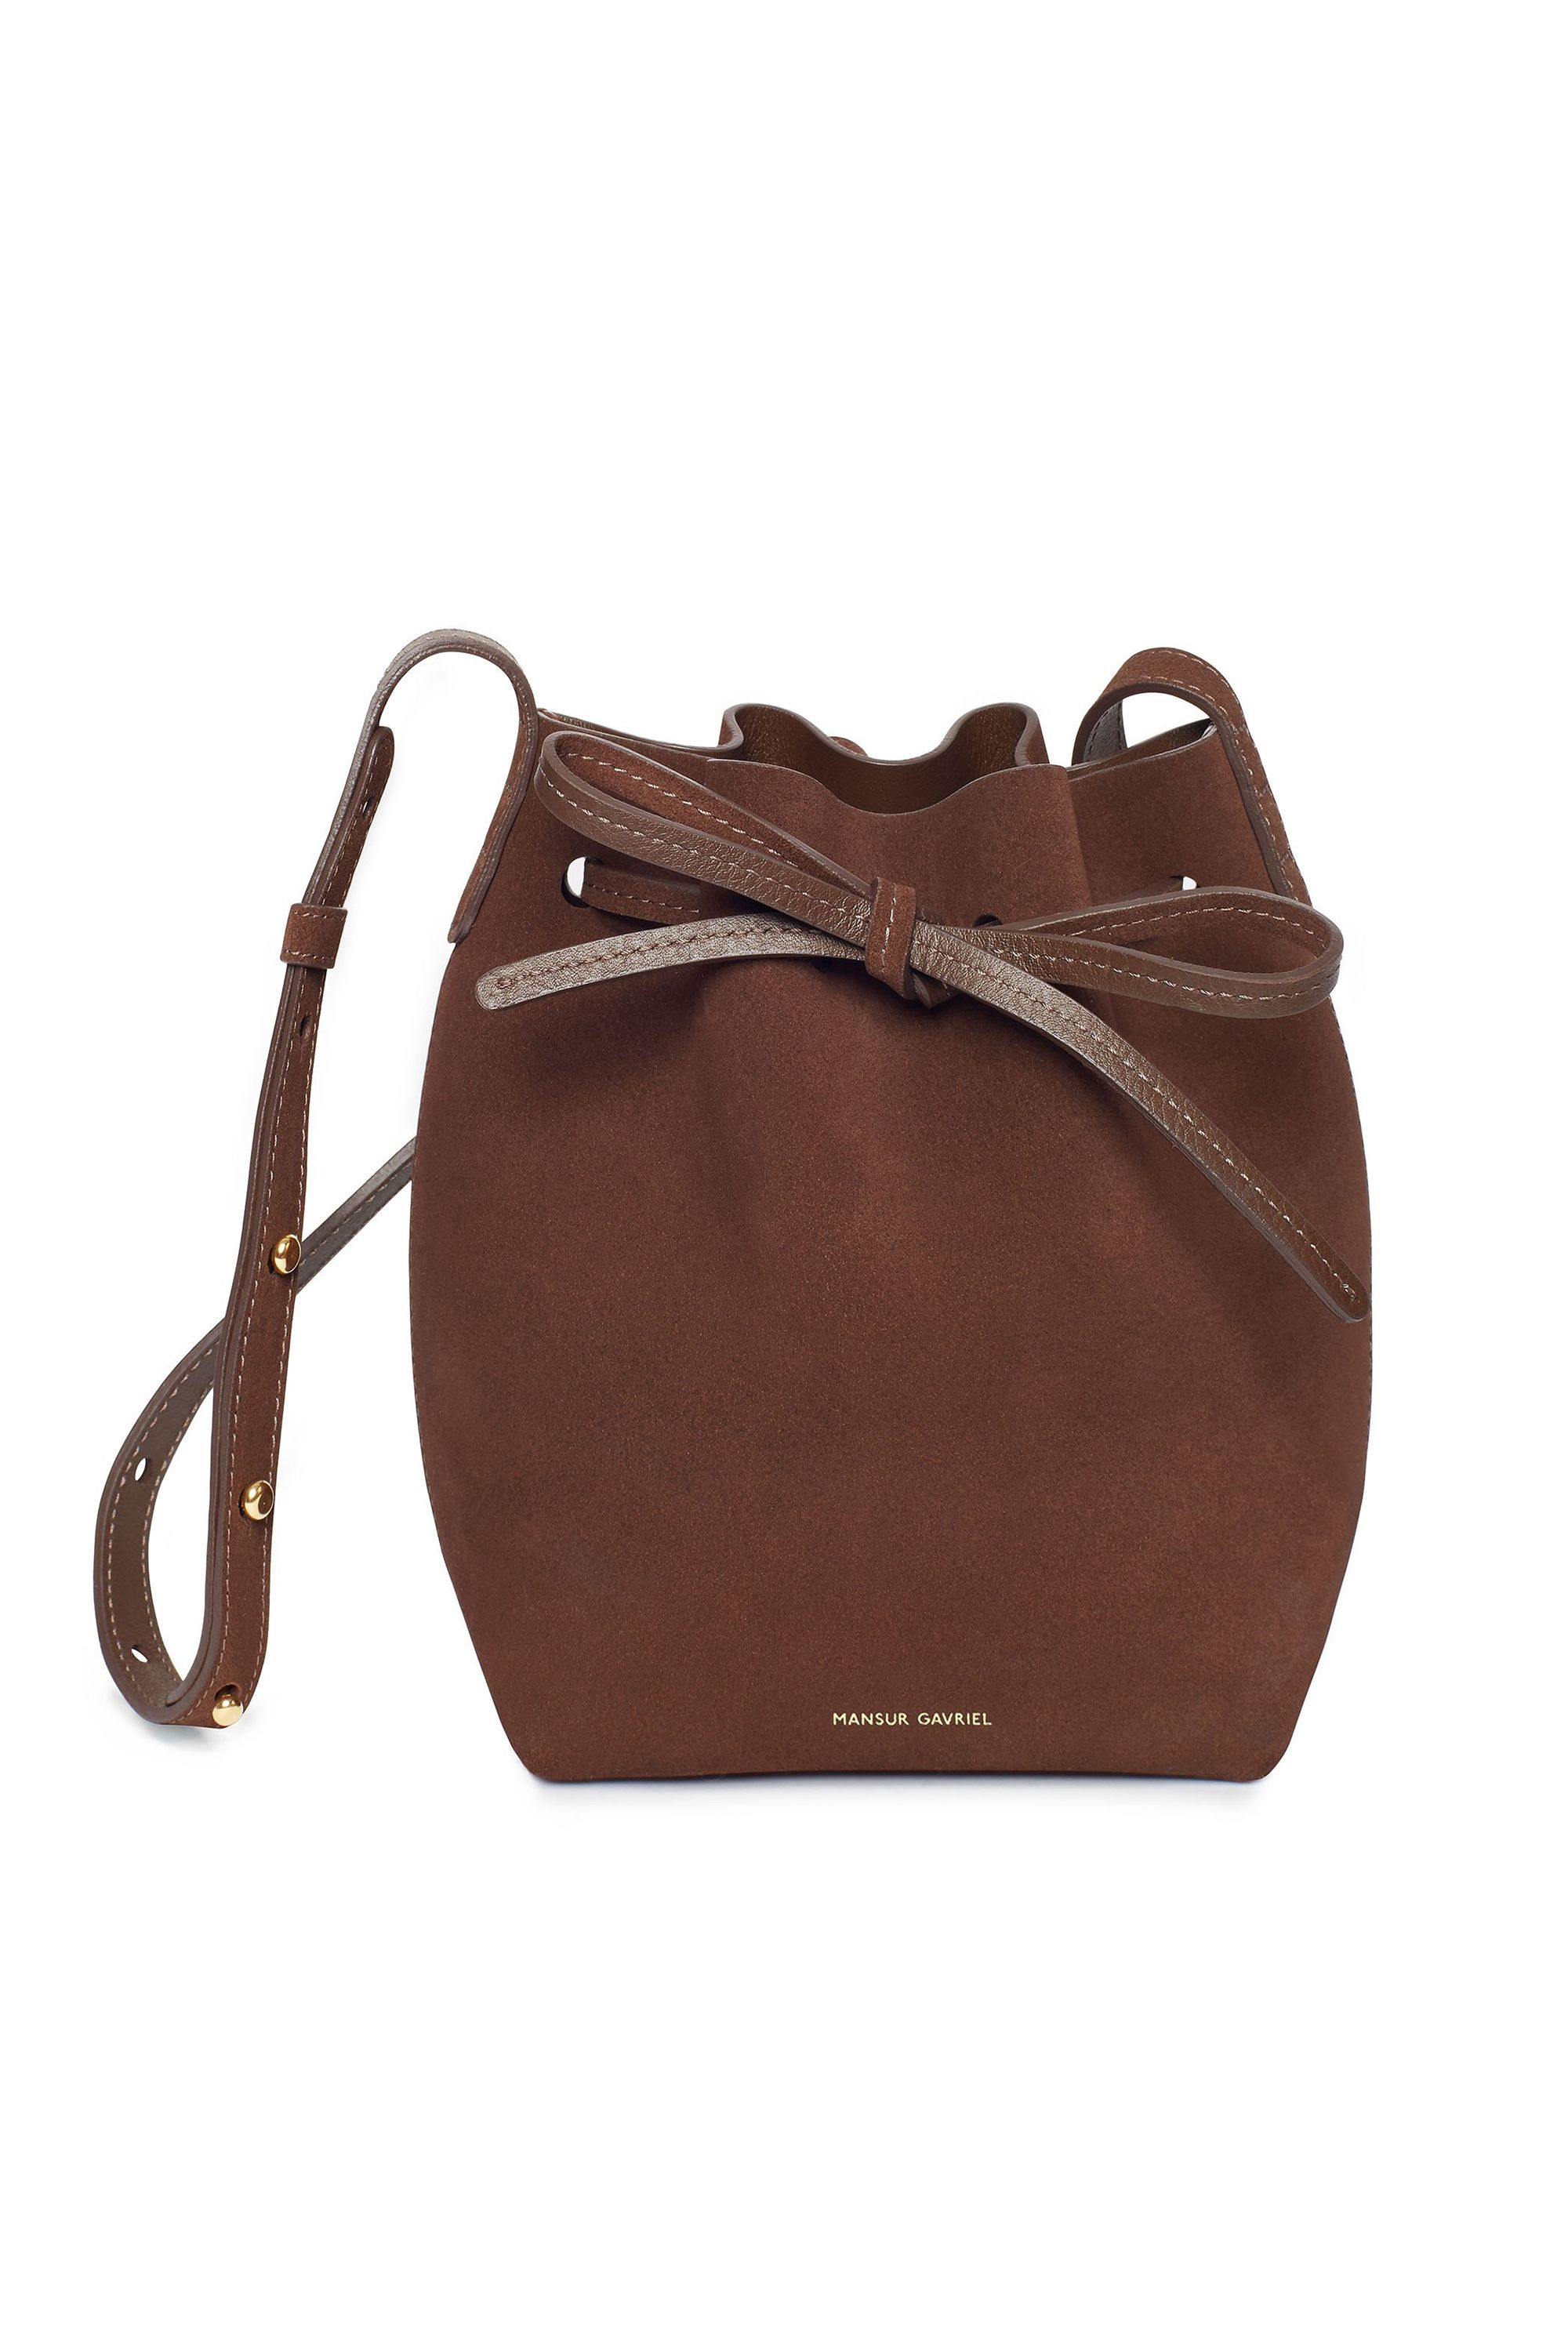 A Bucket Bag for Every Occasion  9932e858d1dac